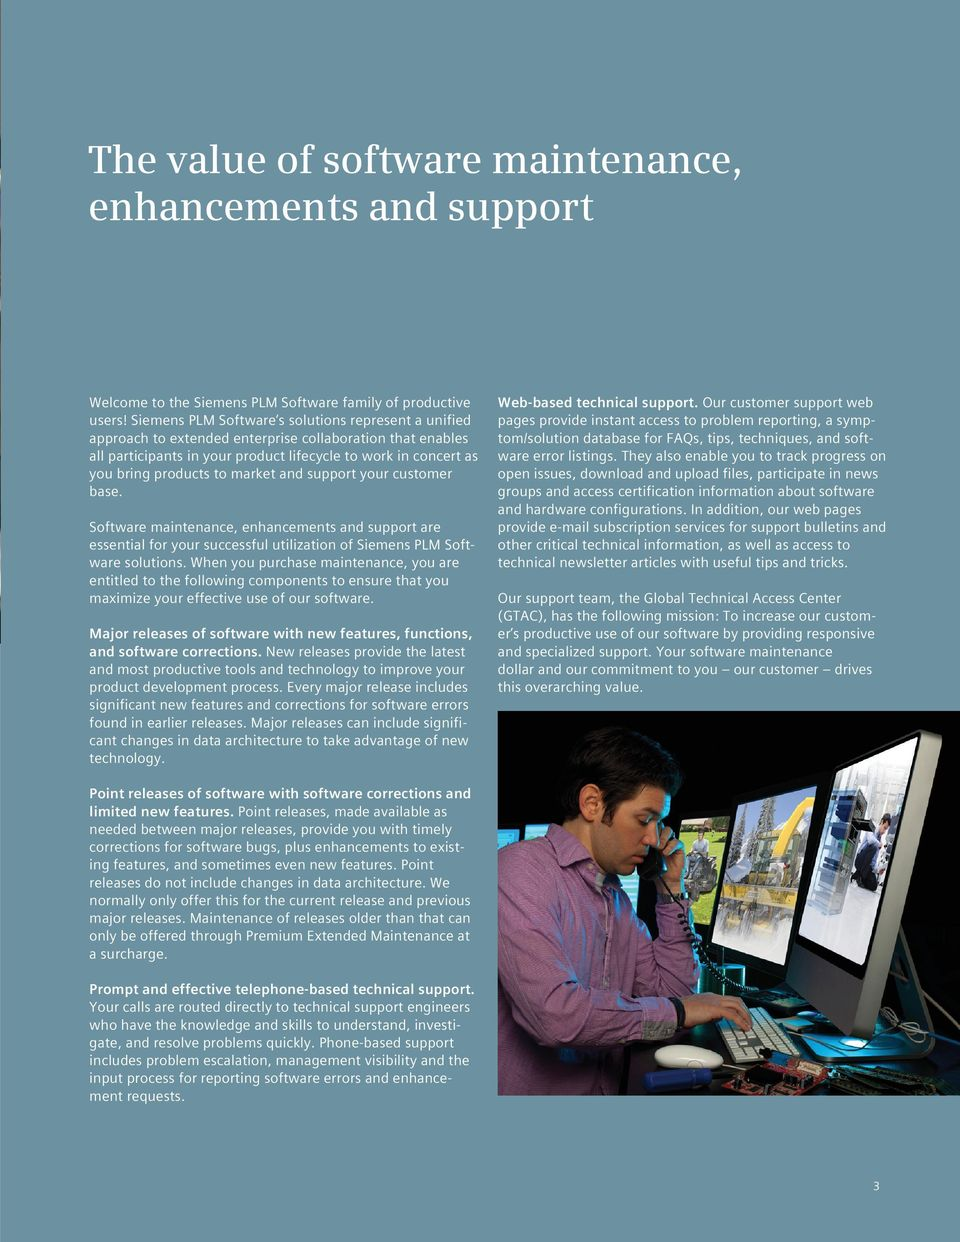 market and support your customer base. Software maintenance, enhancements and support are essential for your successful utilization of Siemens PLM Software solutions.